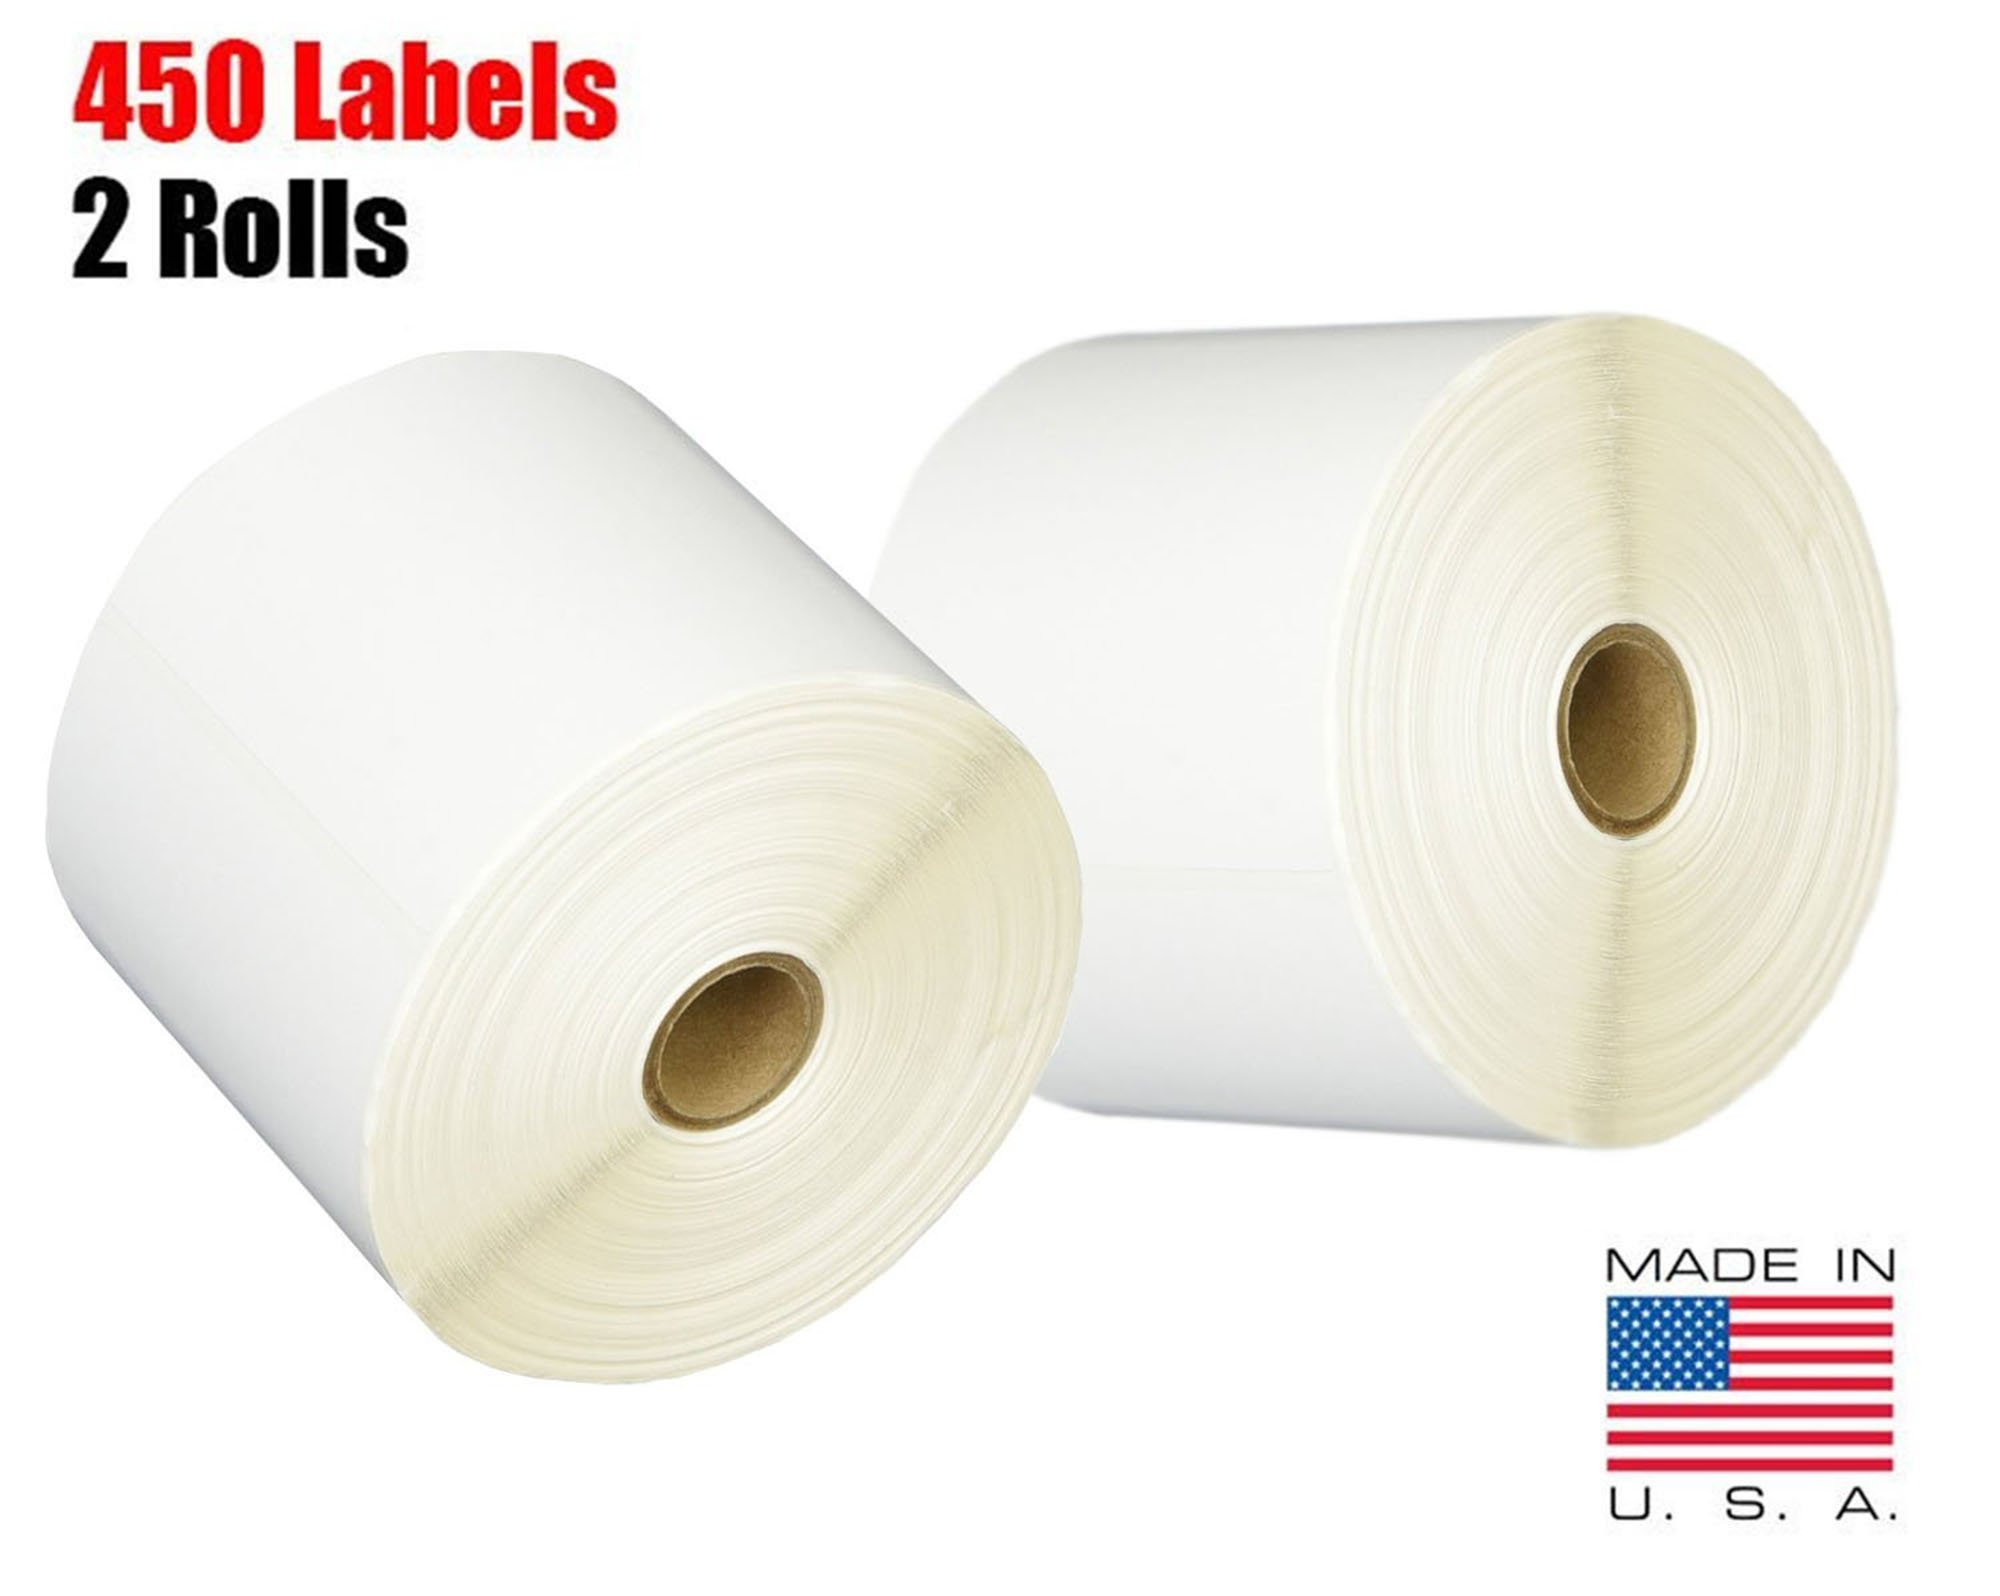 iMBAPrice 2 Rolls of 450 Label (USA Made) 4x6 Direct Thermal for Zebra 2844 ZP-450 ZP-500 ZP-505 Shipping Labels Perfect Roll for 1 INCH CORE Thermal Laser Printers by iMBAPrice (Image #1)